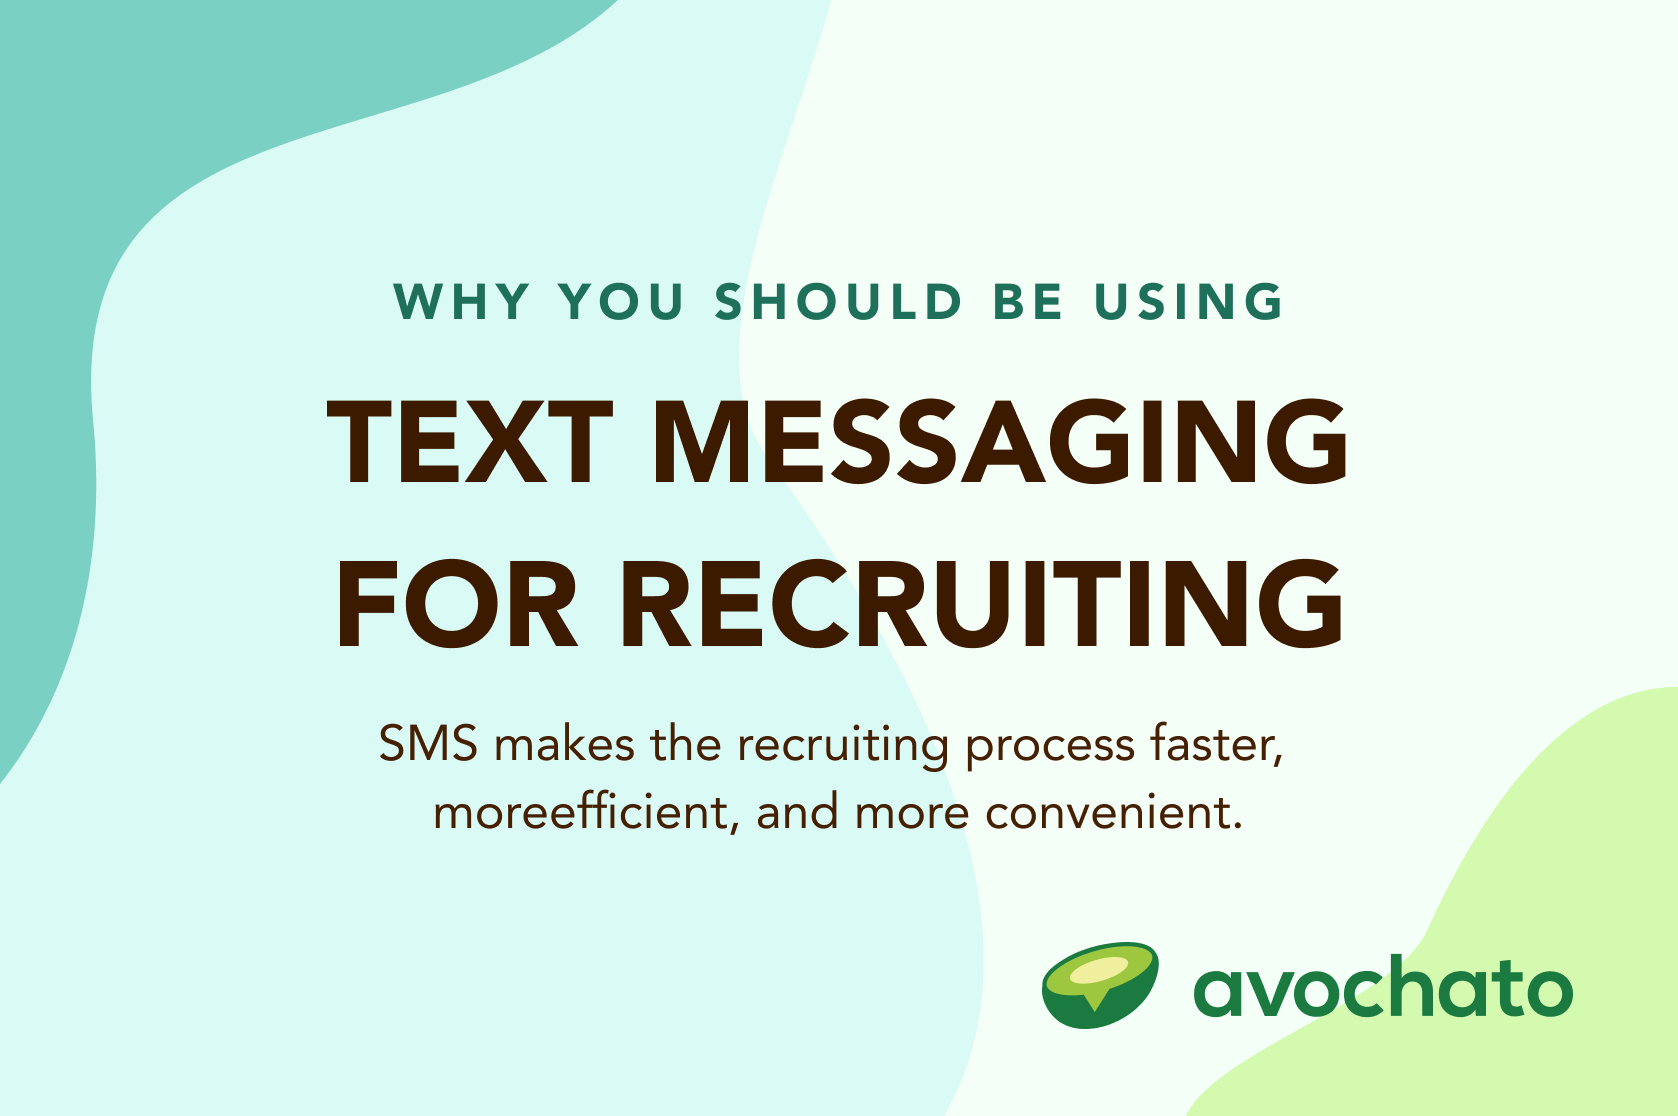 sms for recruiting